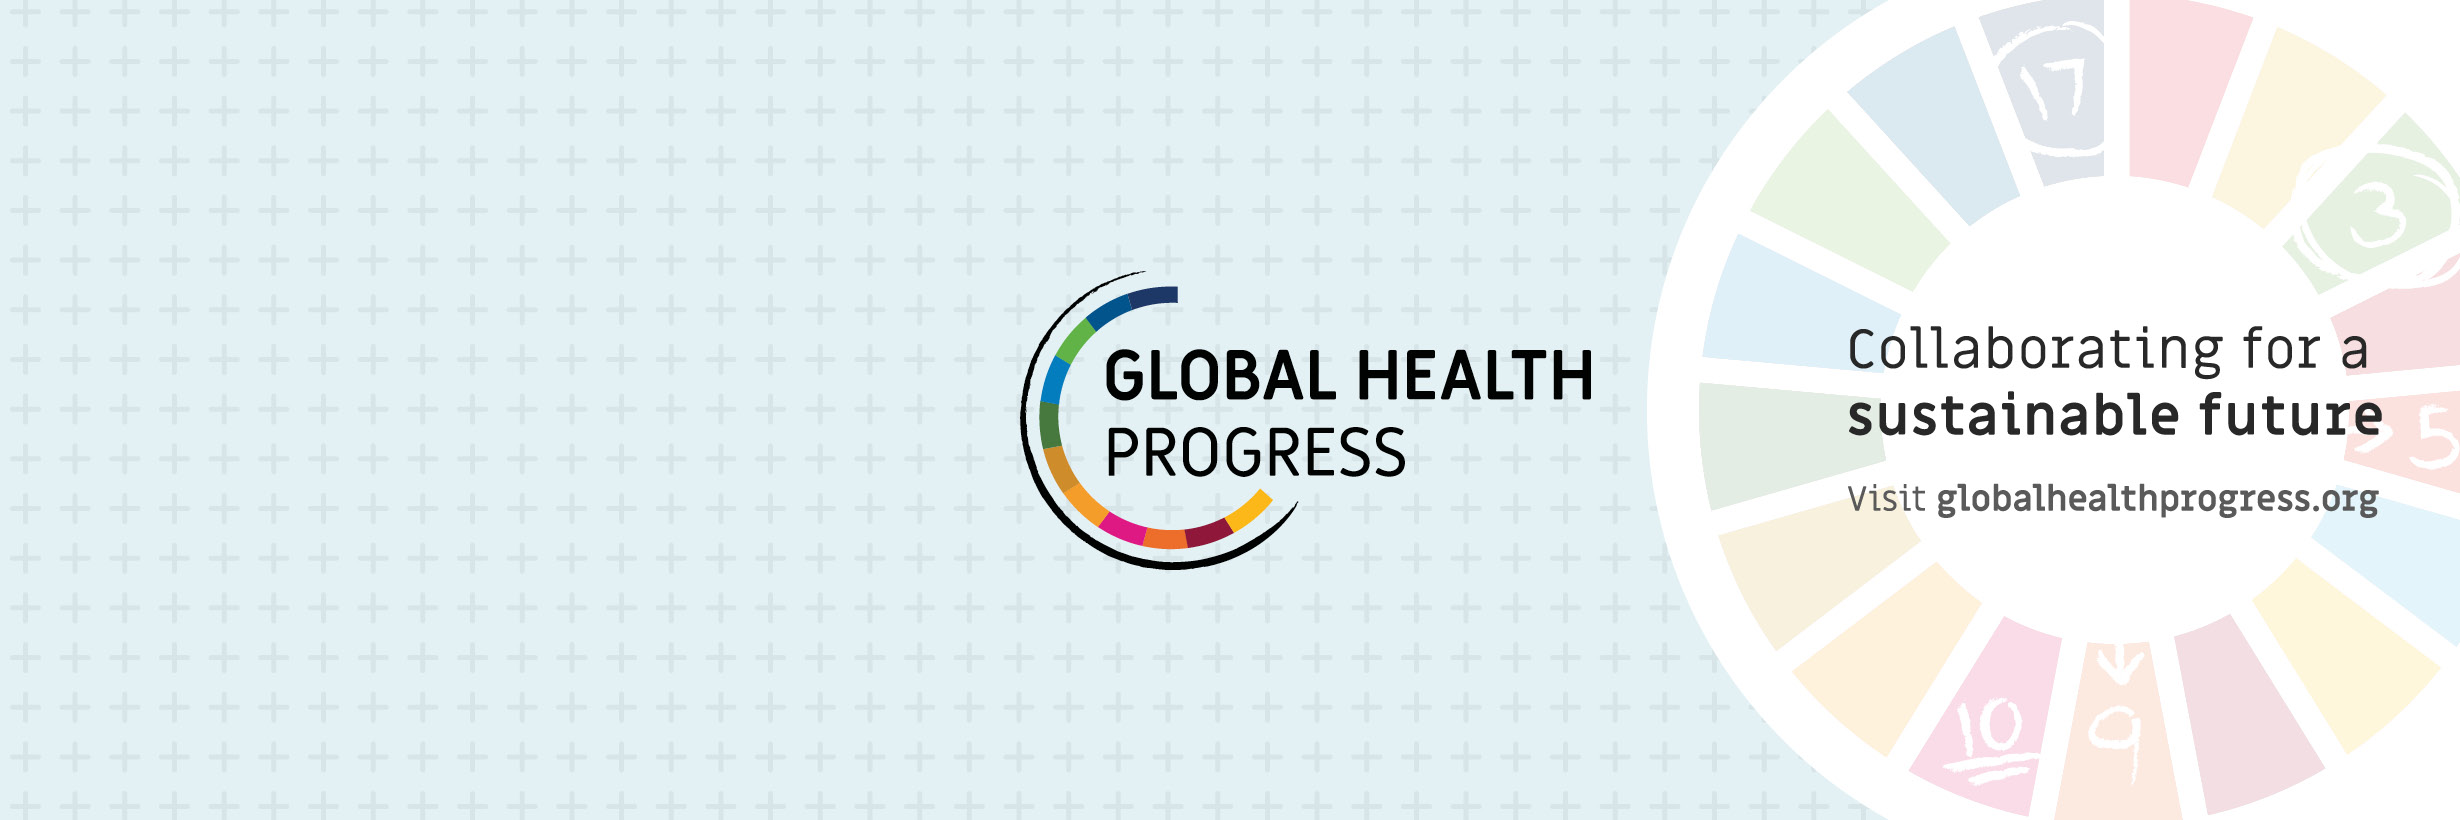 Global Health Progress - Collaborating for a sustainable future